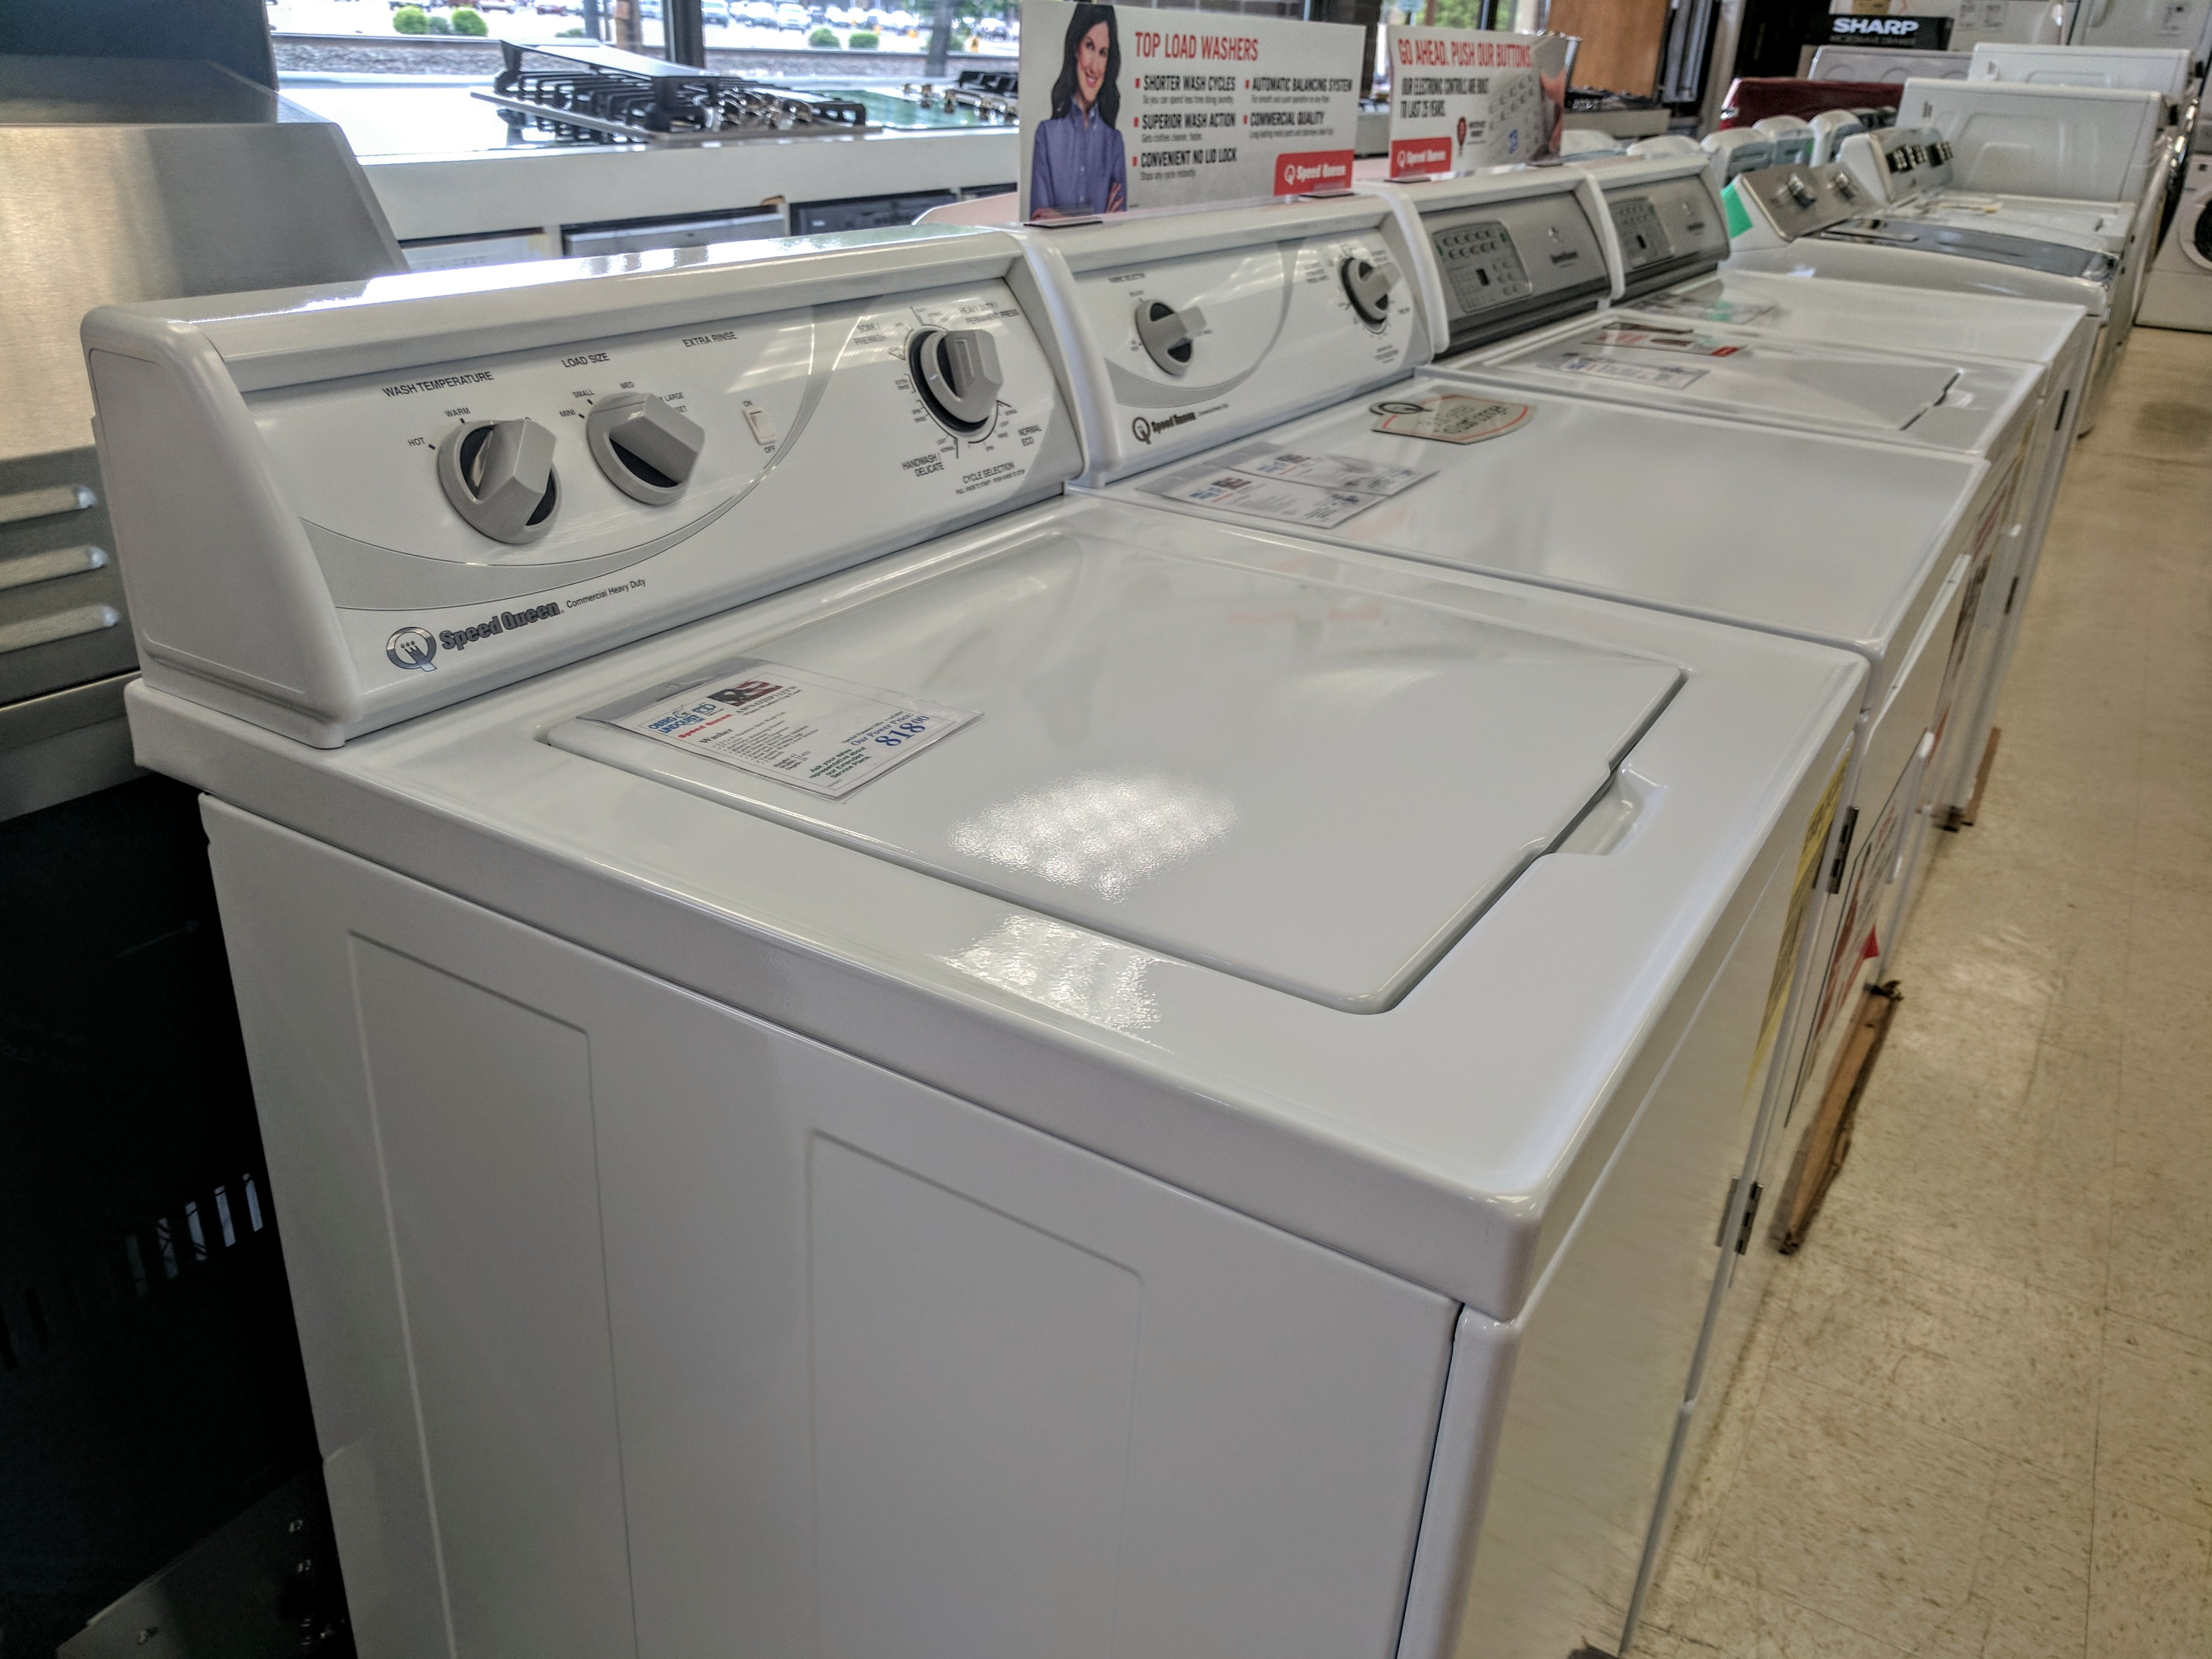 Dryer Repair Services in New York